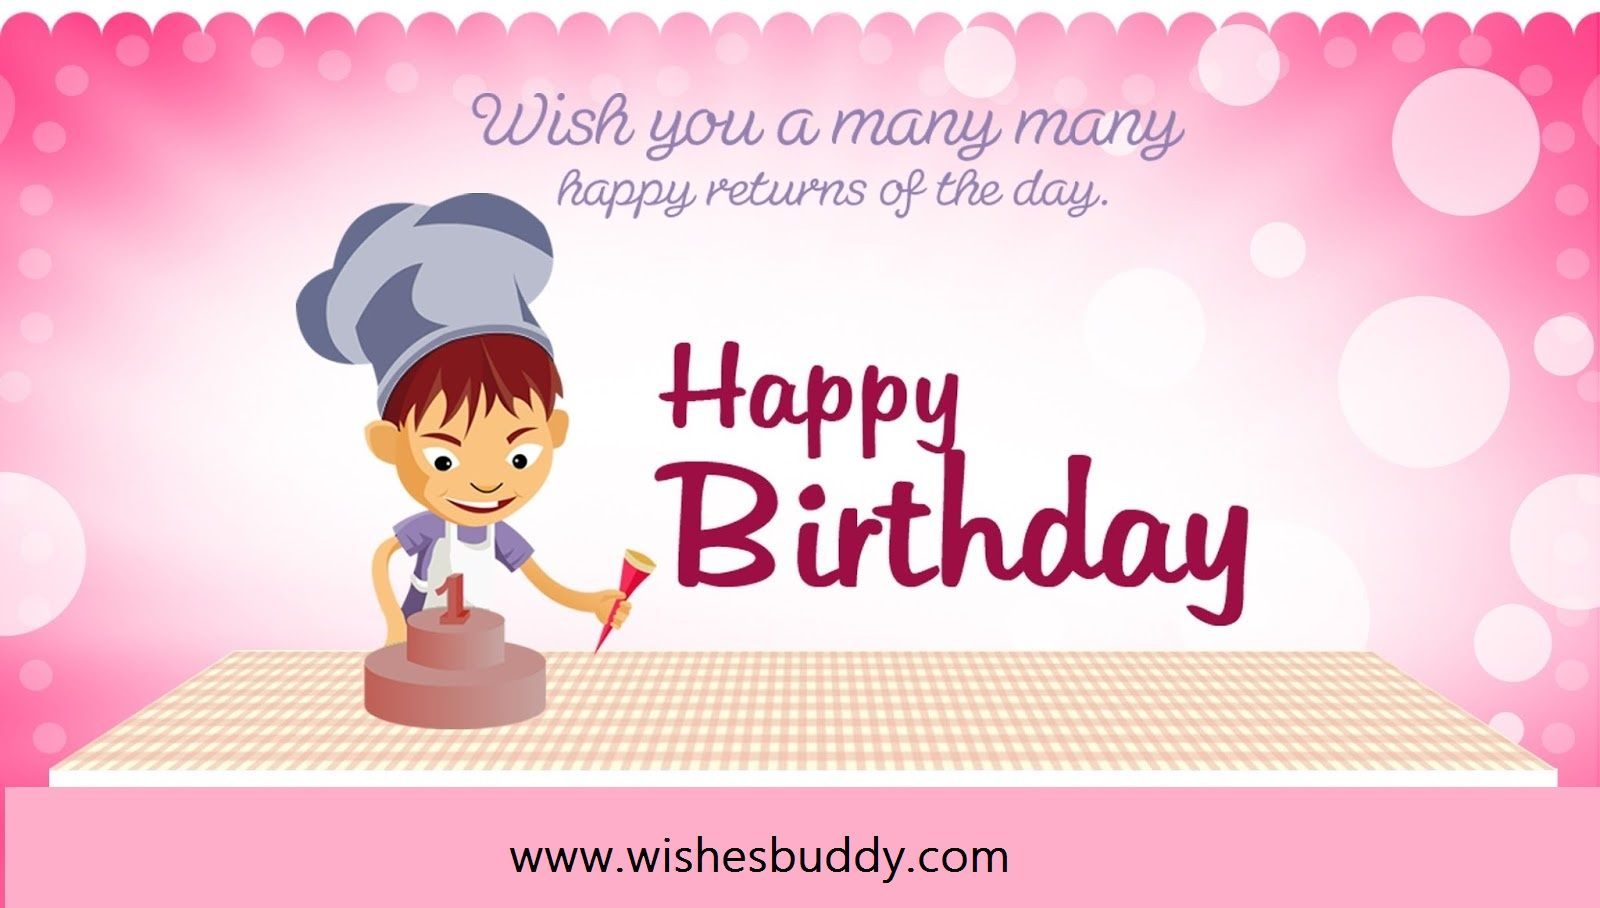 birthday greetings message for a best friend ; 8f01baa57f2df62dd8ed6de14219de7e